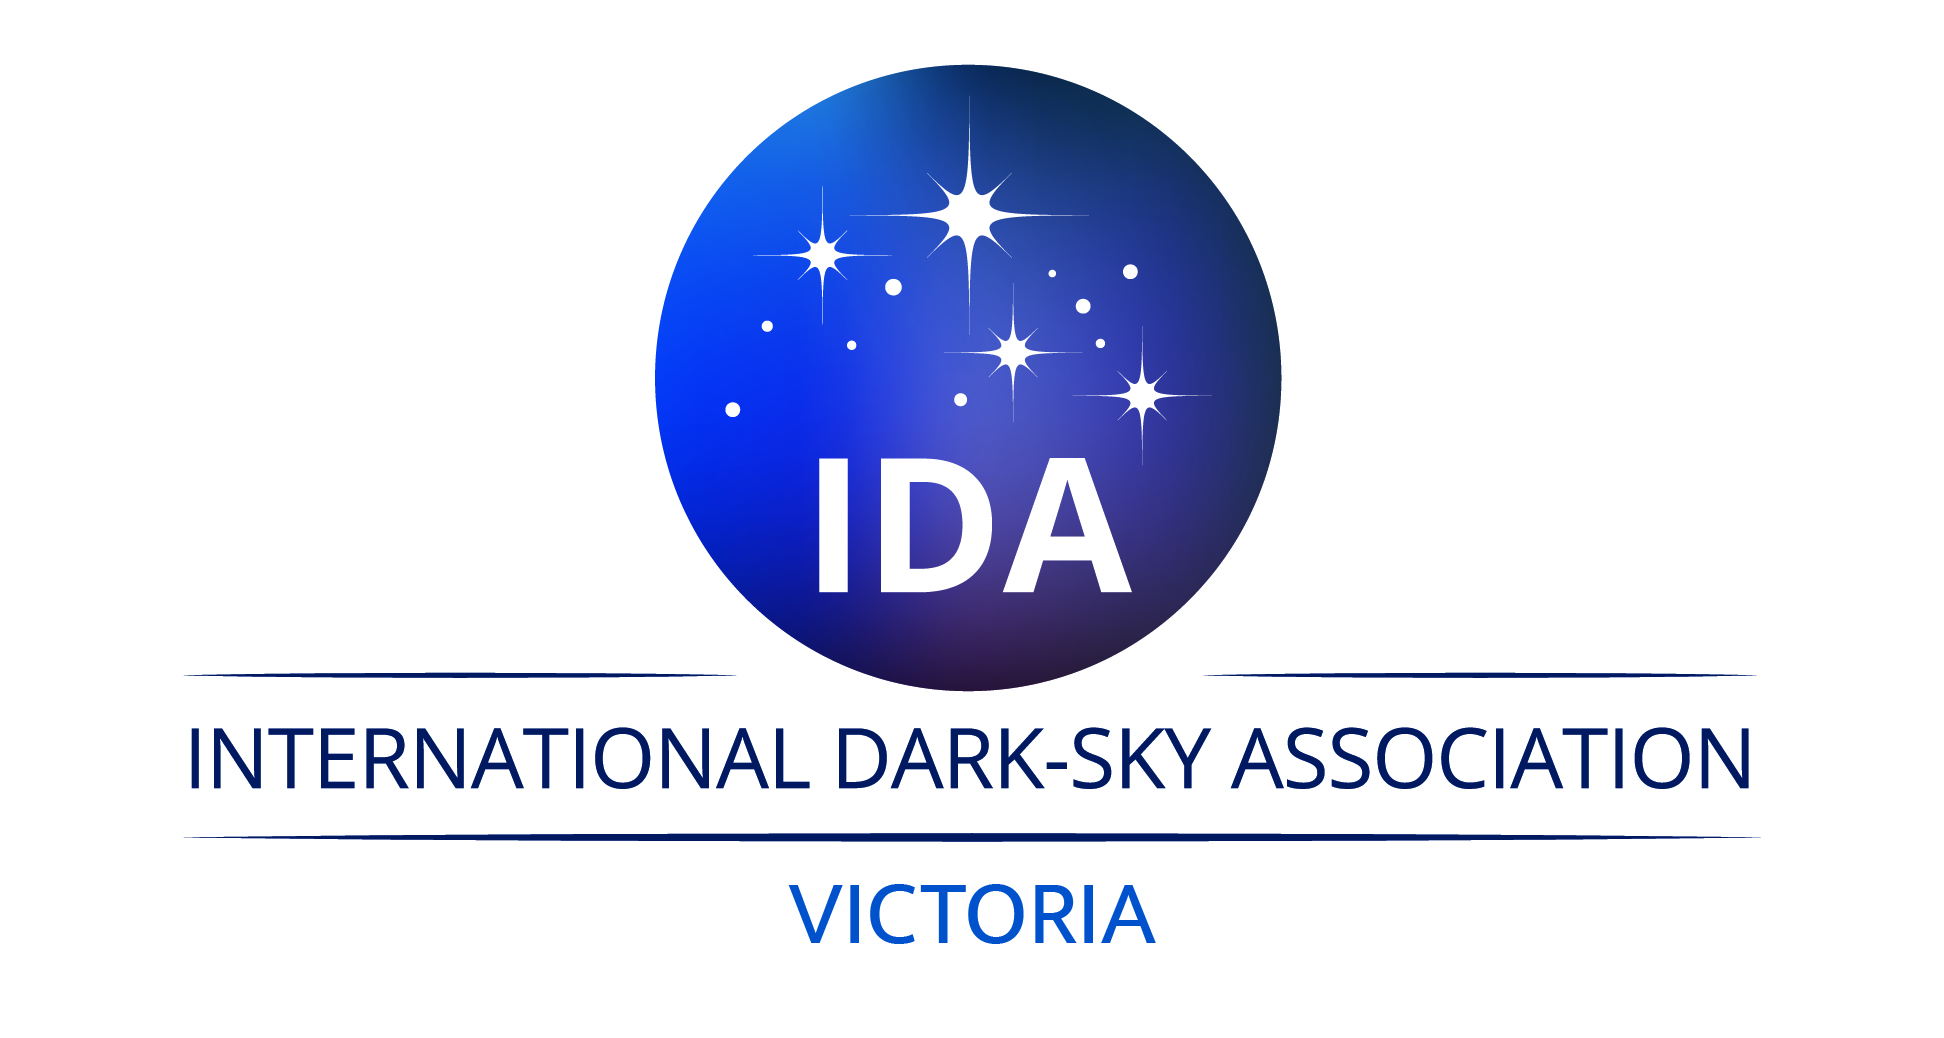 International Dark-Sky Association Victoria (Australia)